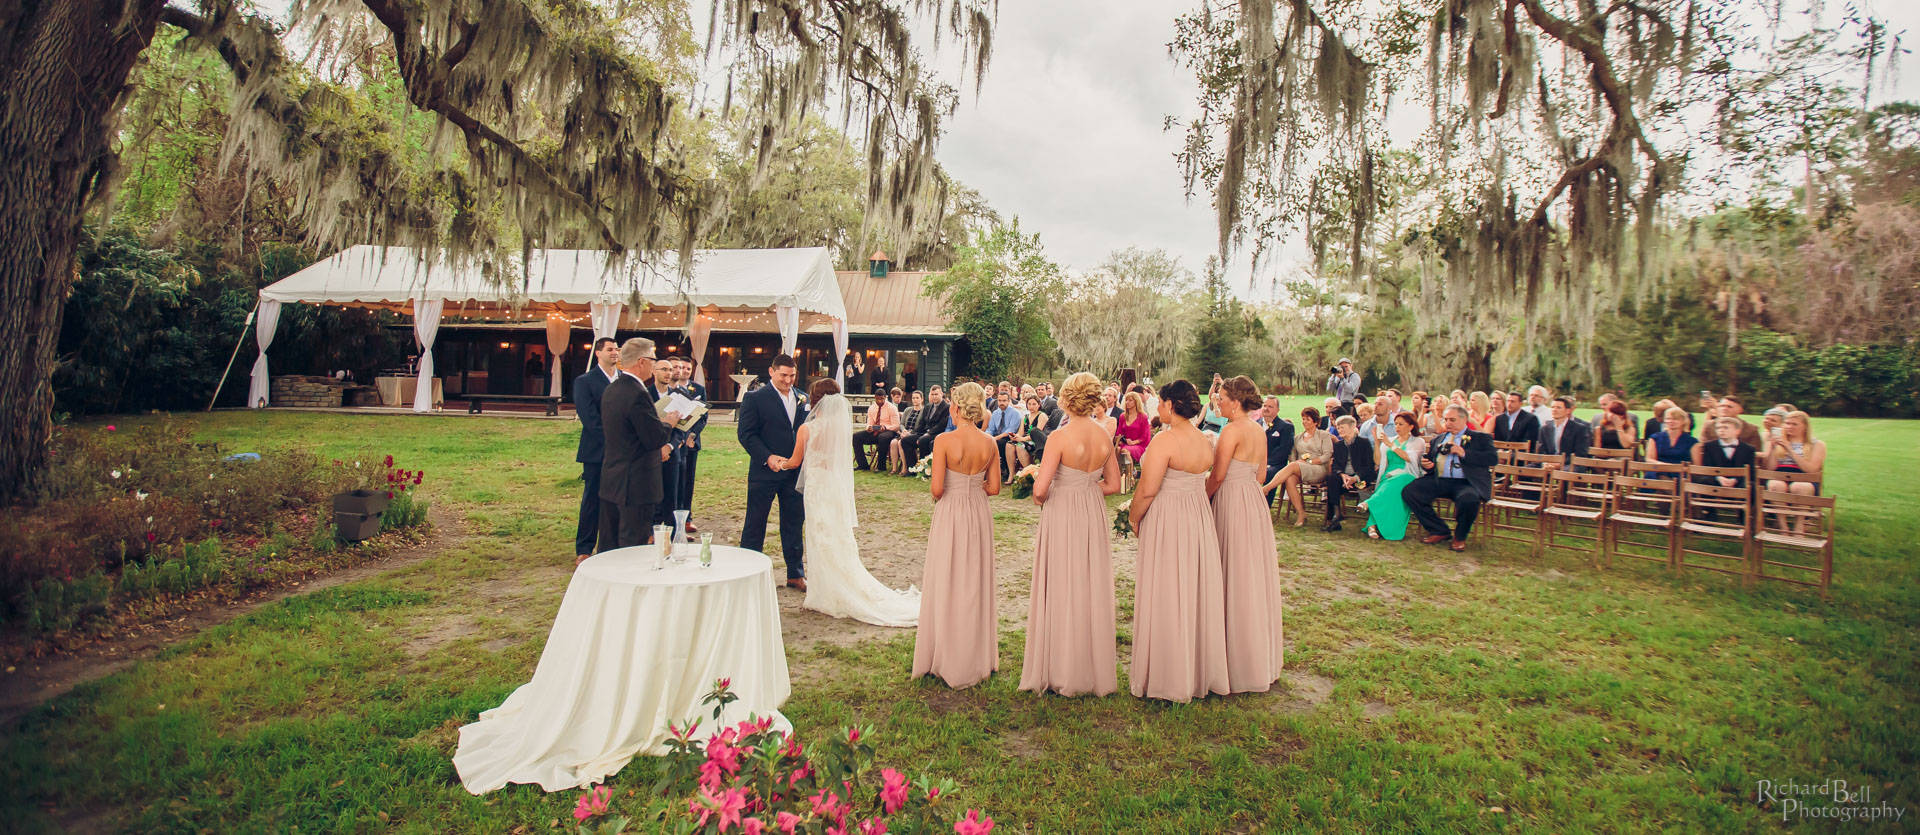 Ferraro ceremony at Magnolia Plantation